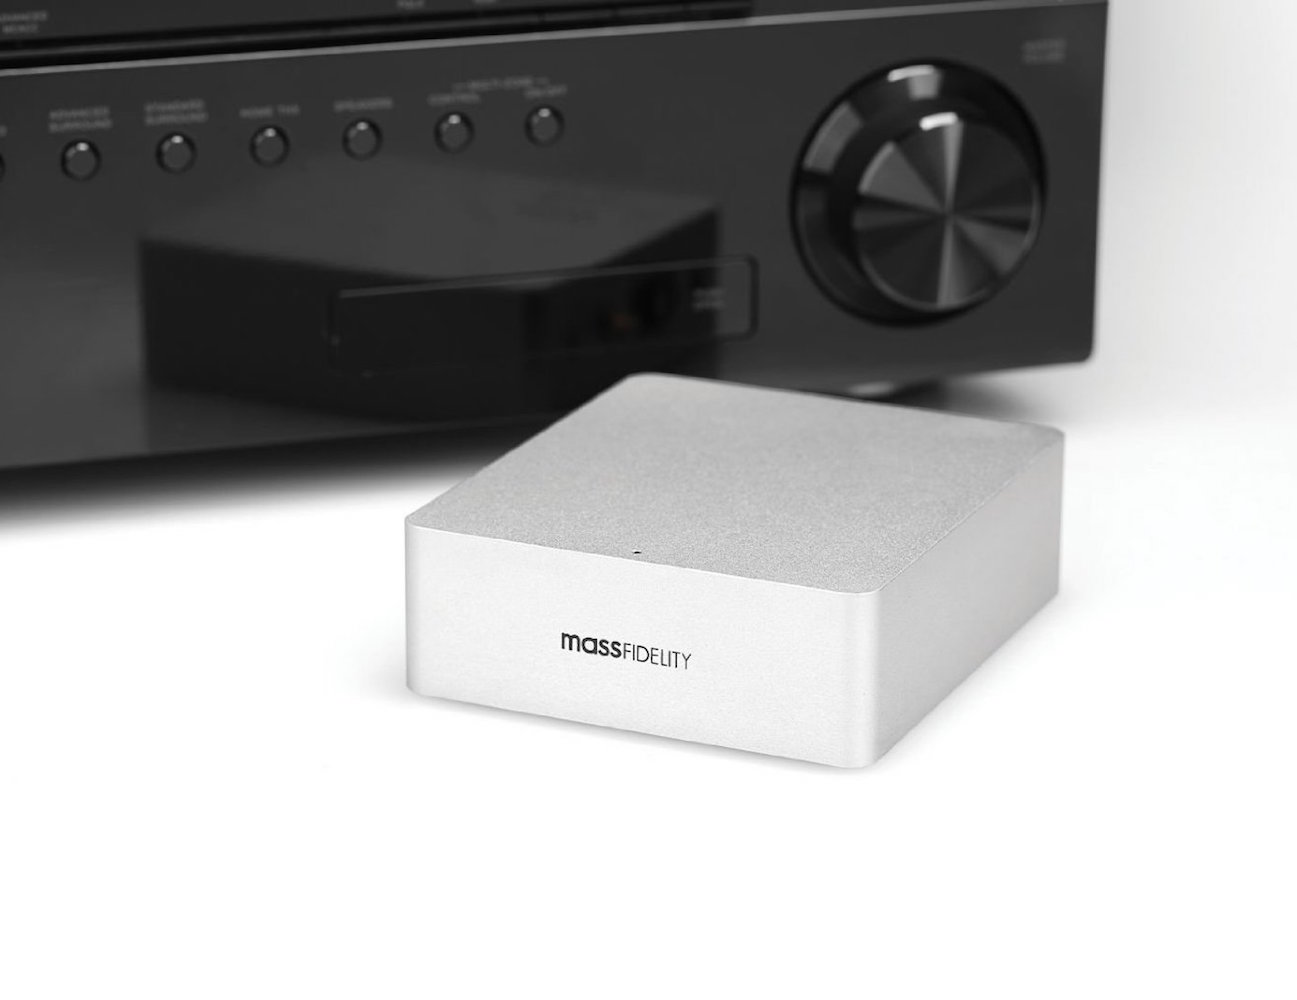 Relay Hi-Fi Bluetooth DAC From Mass Fidelity